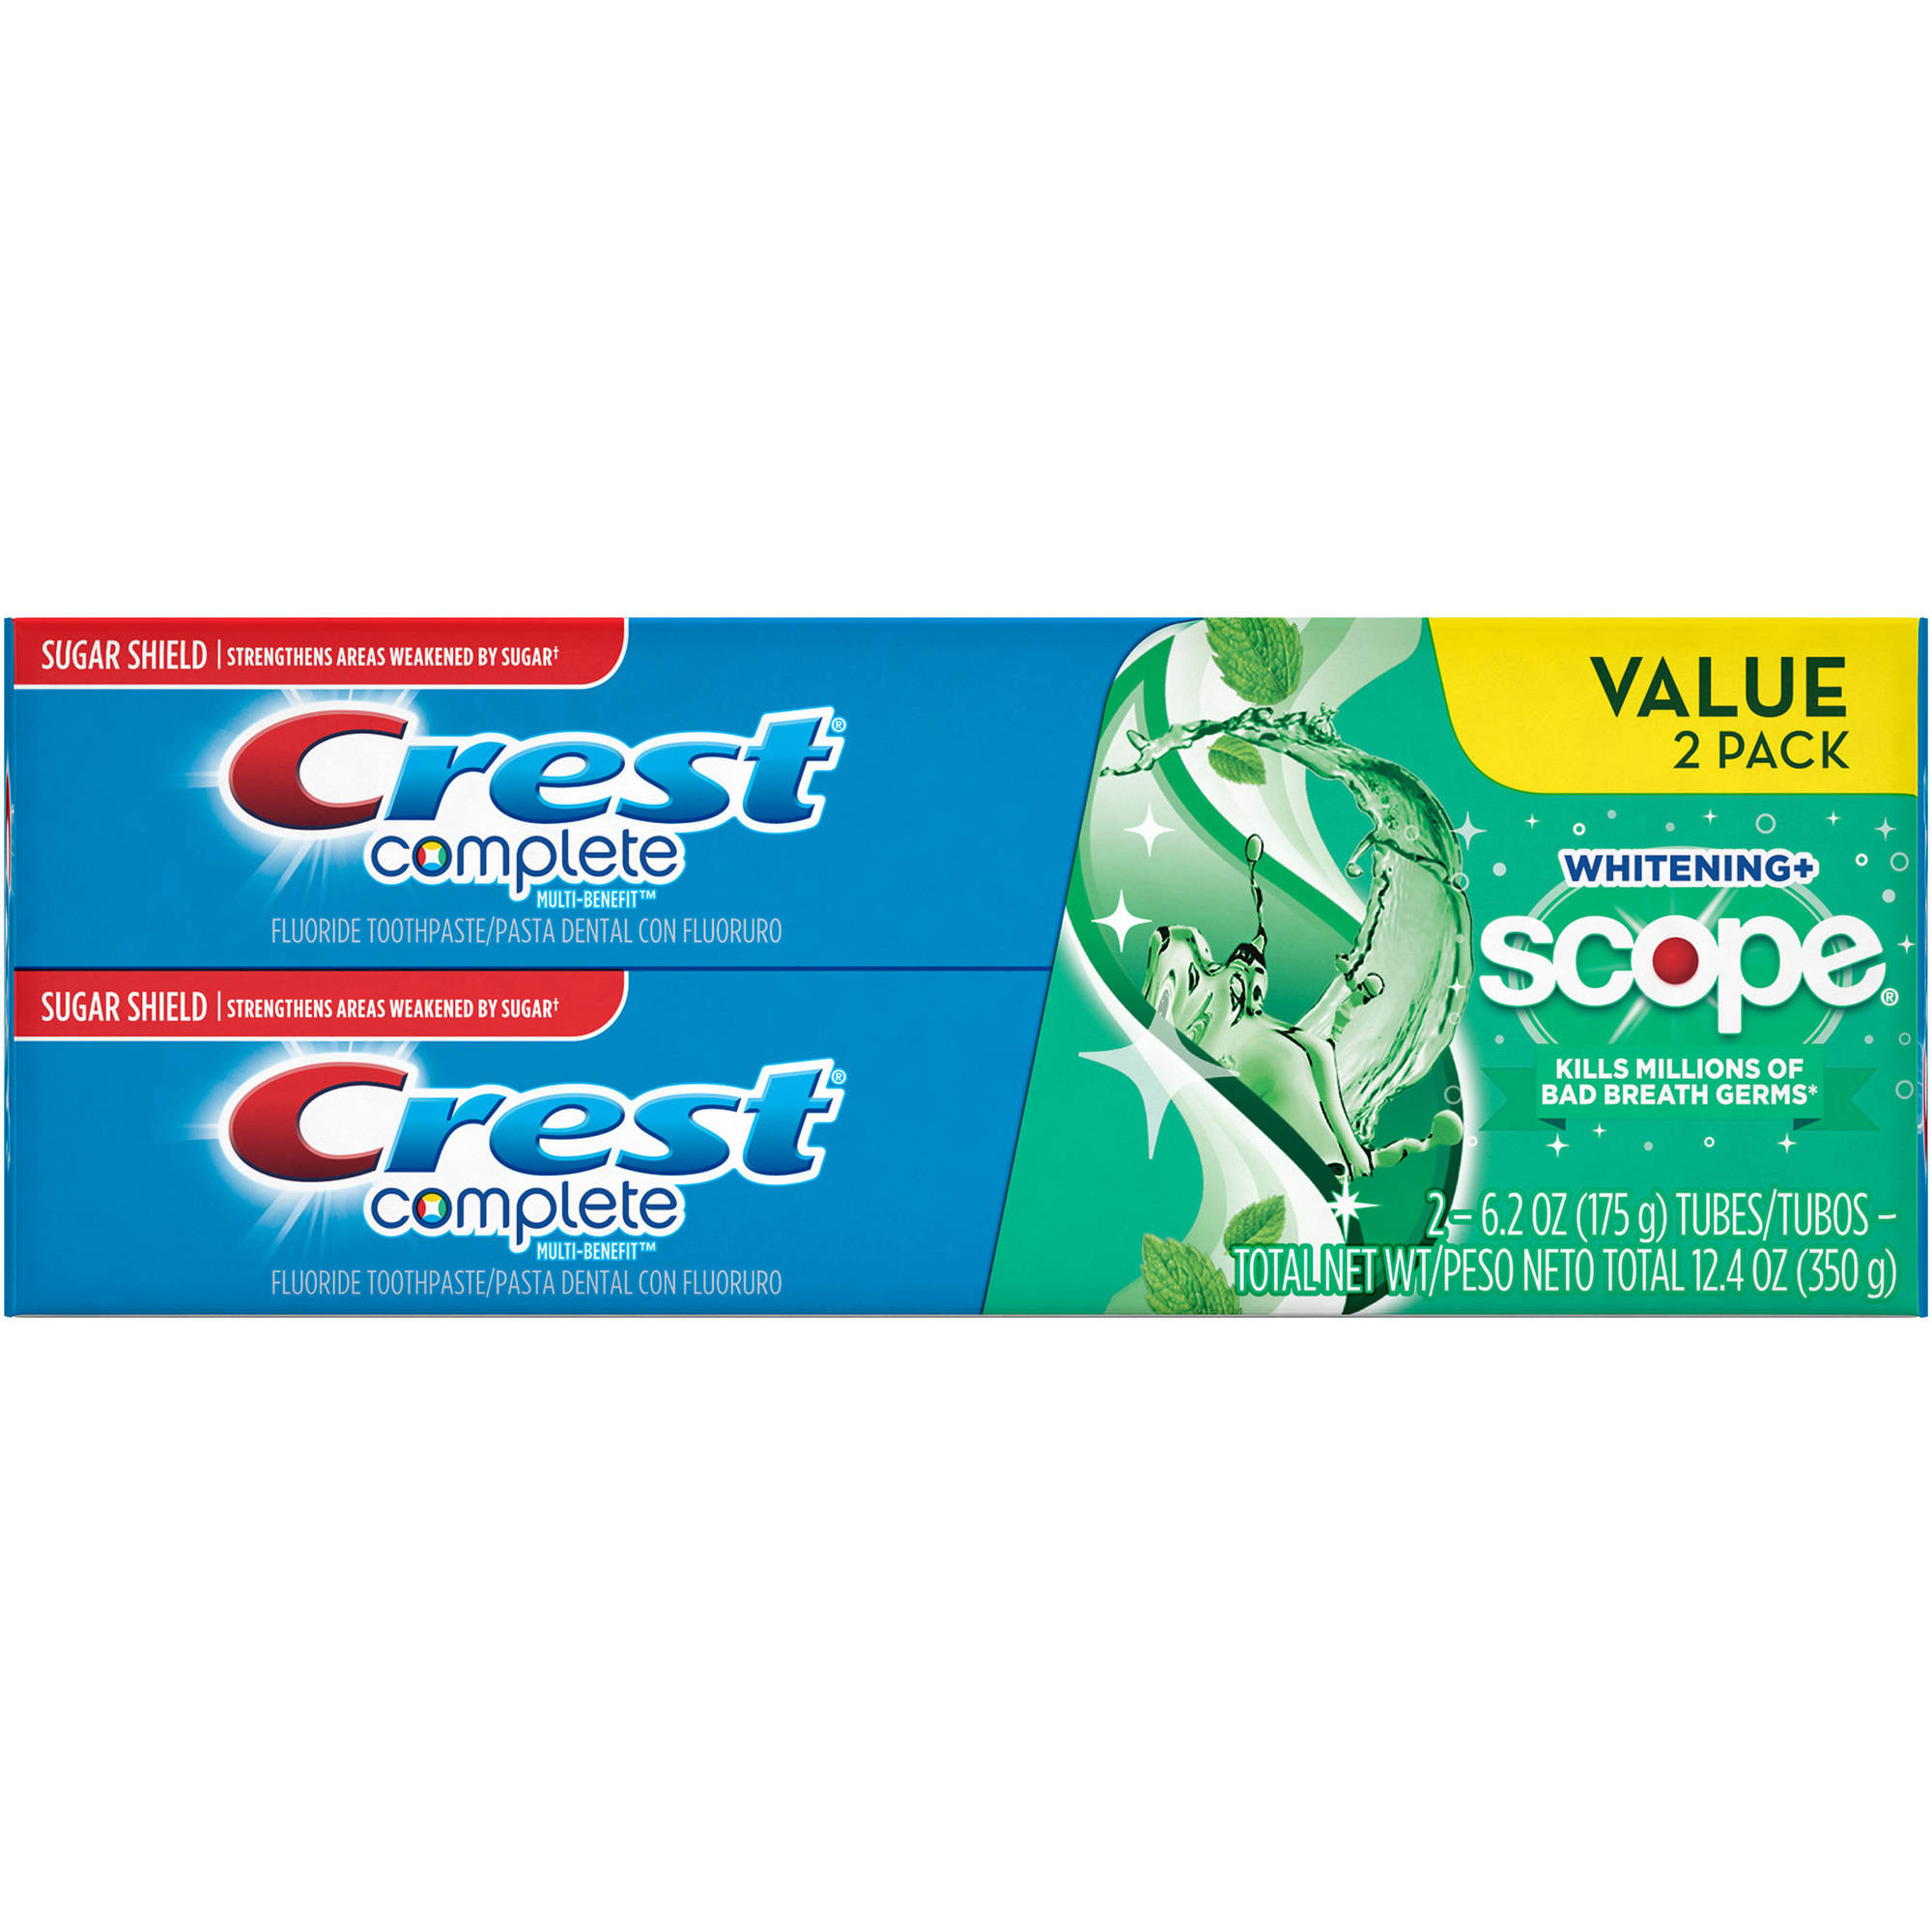 Crest Complete Whitening   Scope Minty Fresh Striped Toothpaste, 6.2 oz, (Pack of 2)